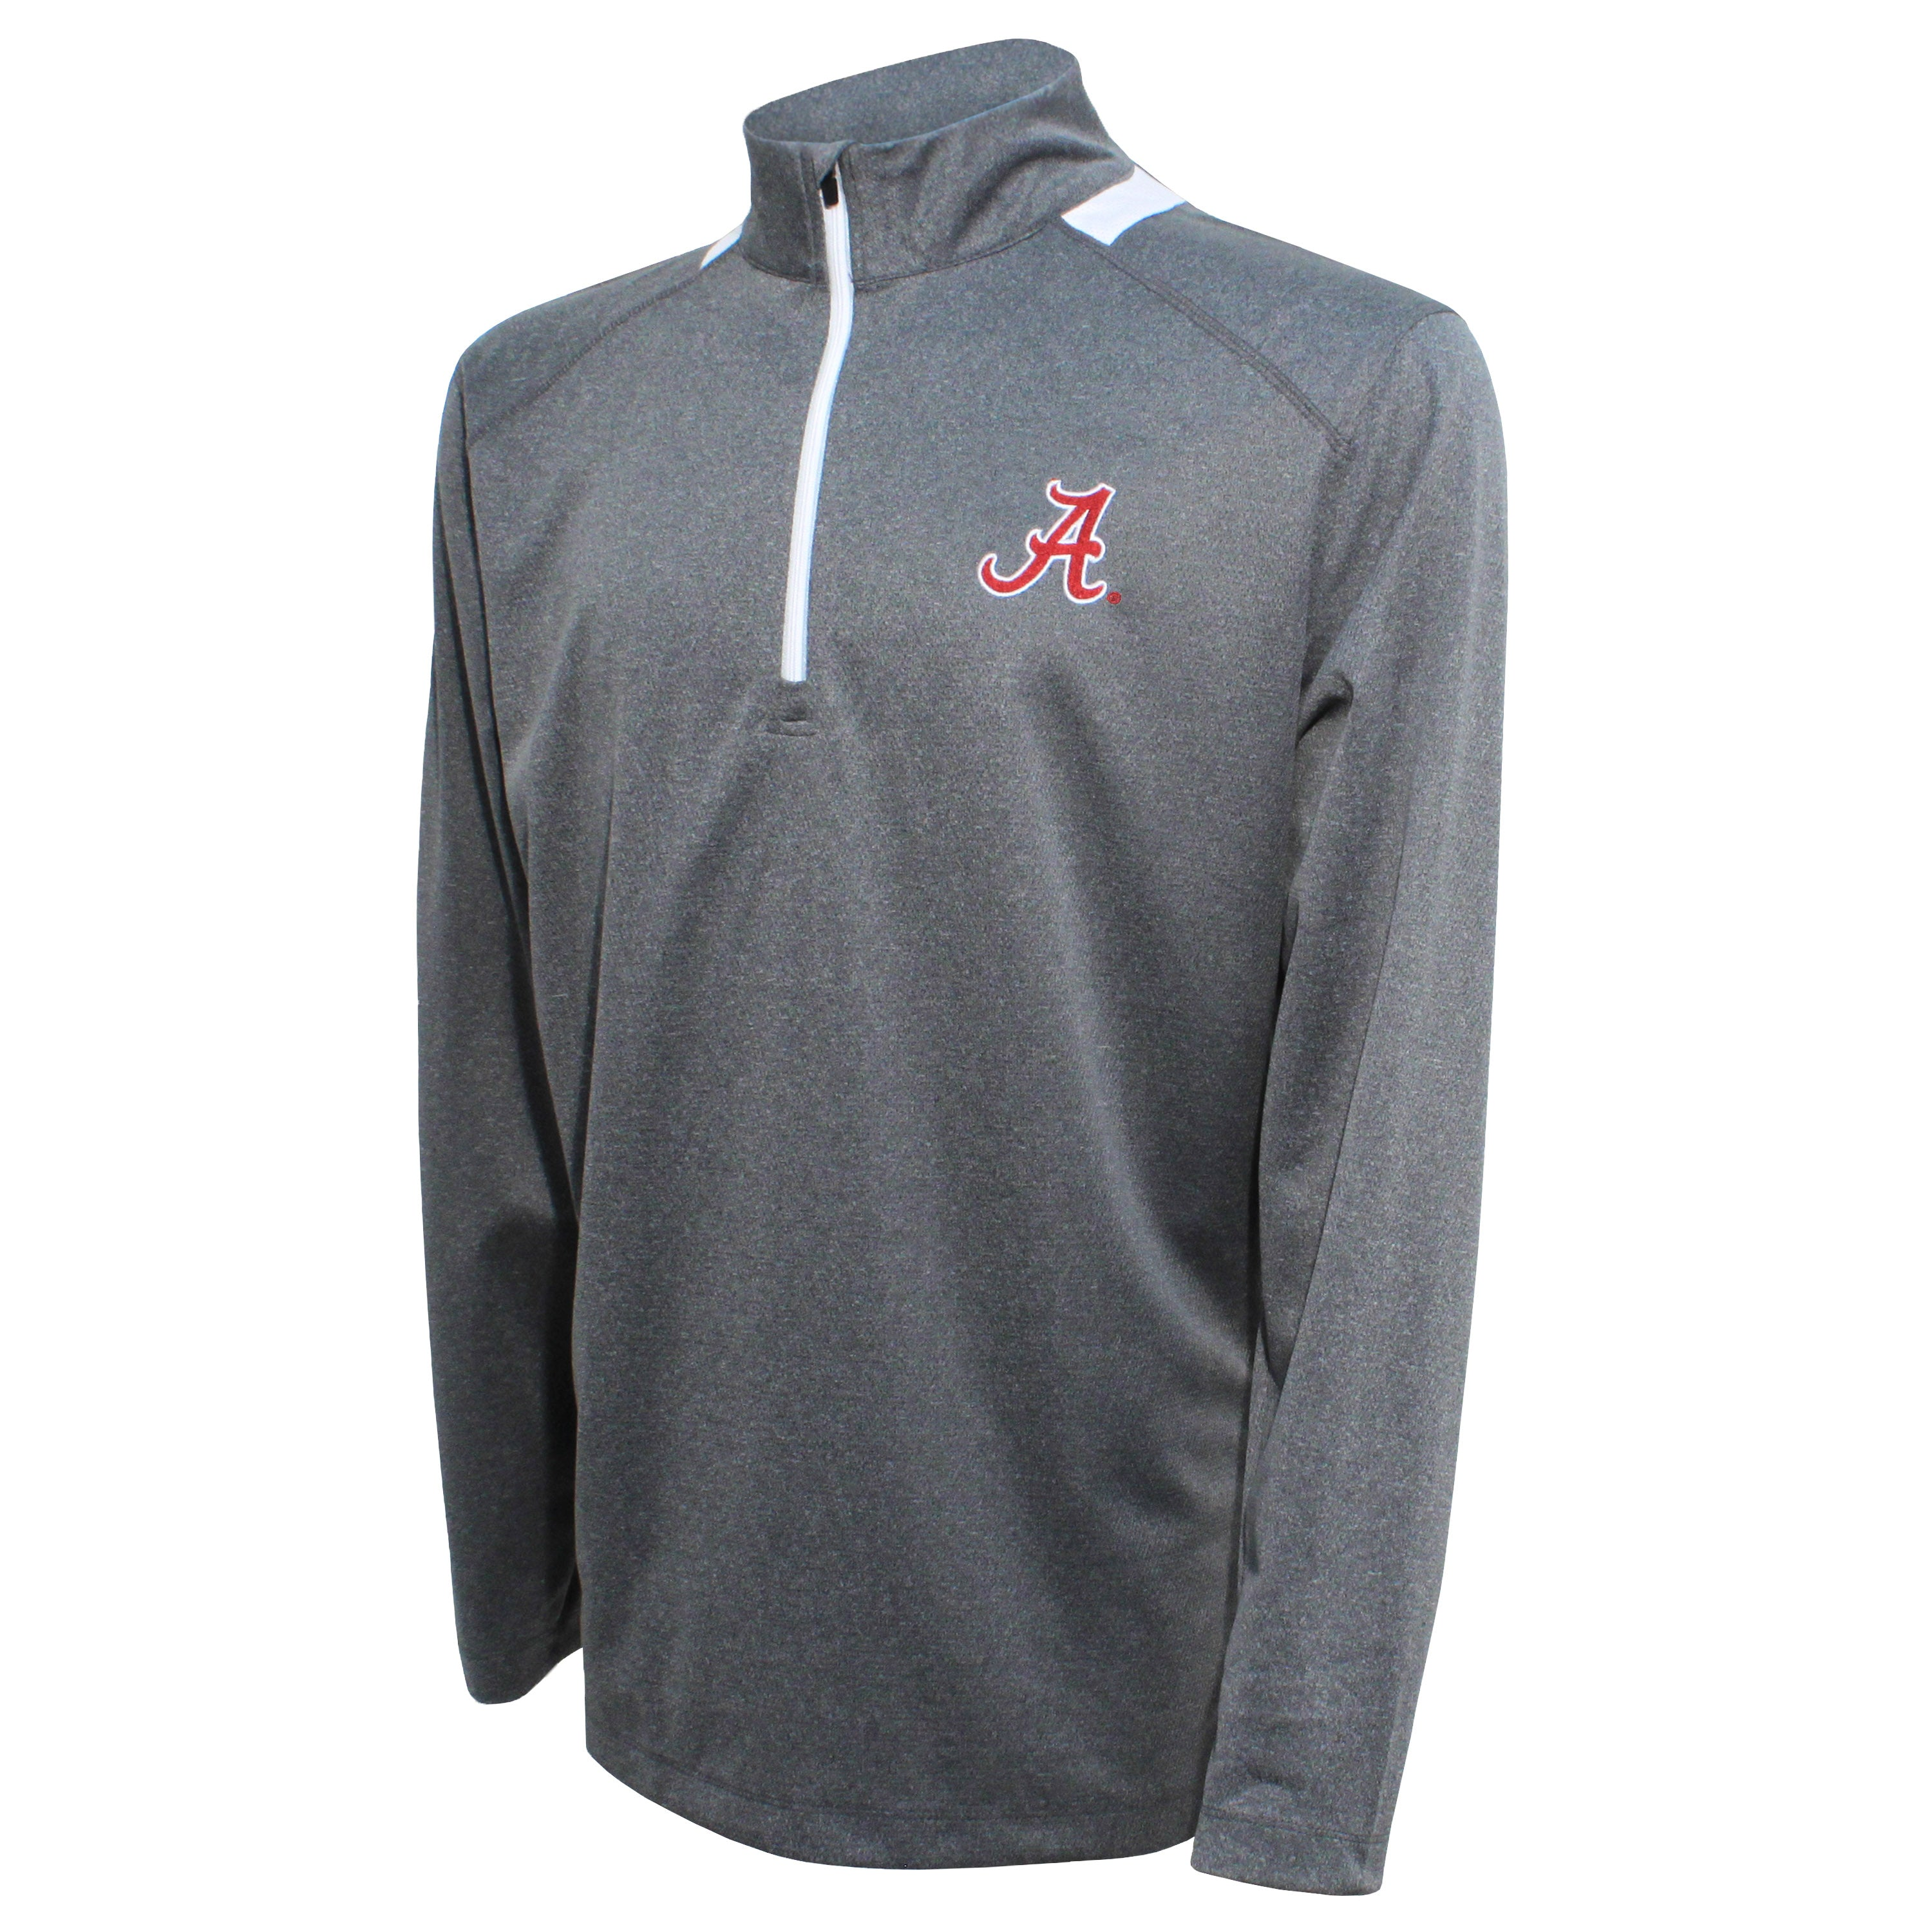 Crable Alabama Men's Gray Quarter Zip With Neck Panel